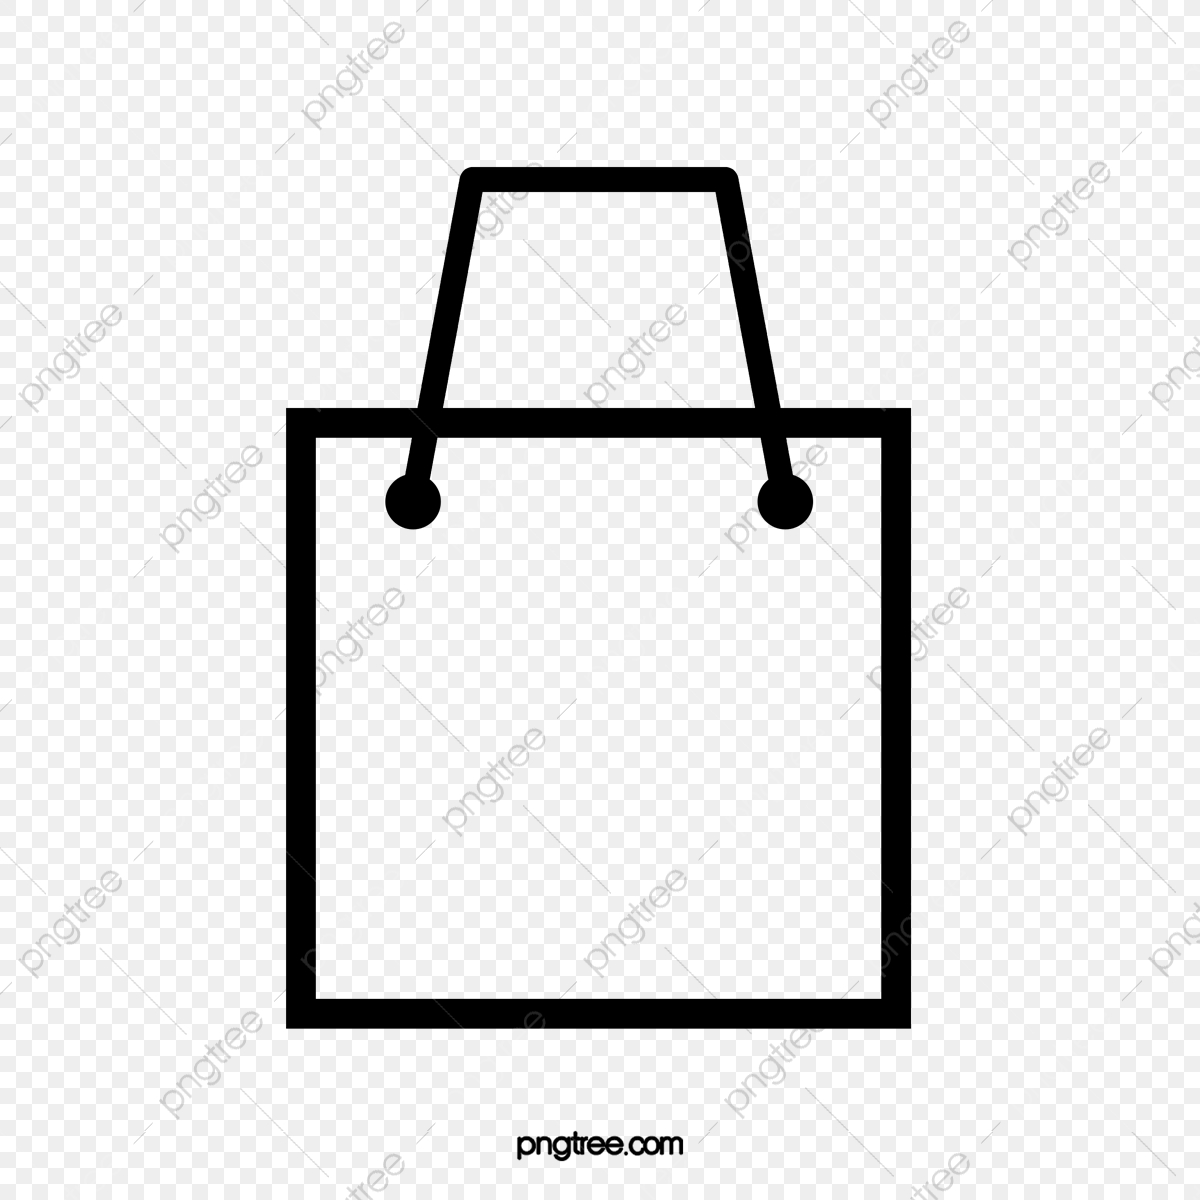 Shopping Bag, Bag Clipart, Creative Shopping Bags PNG.